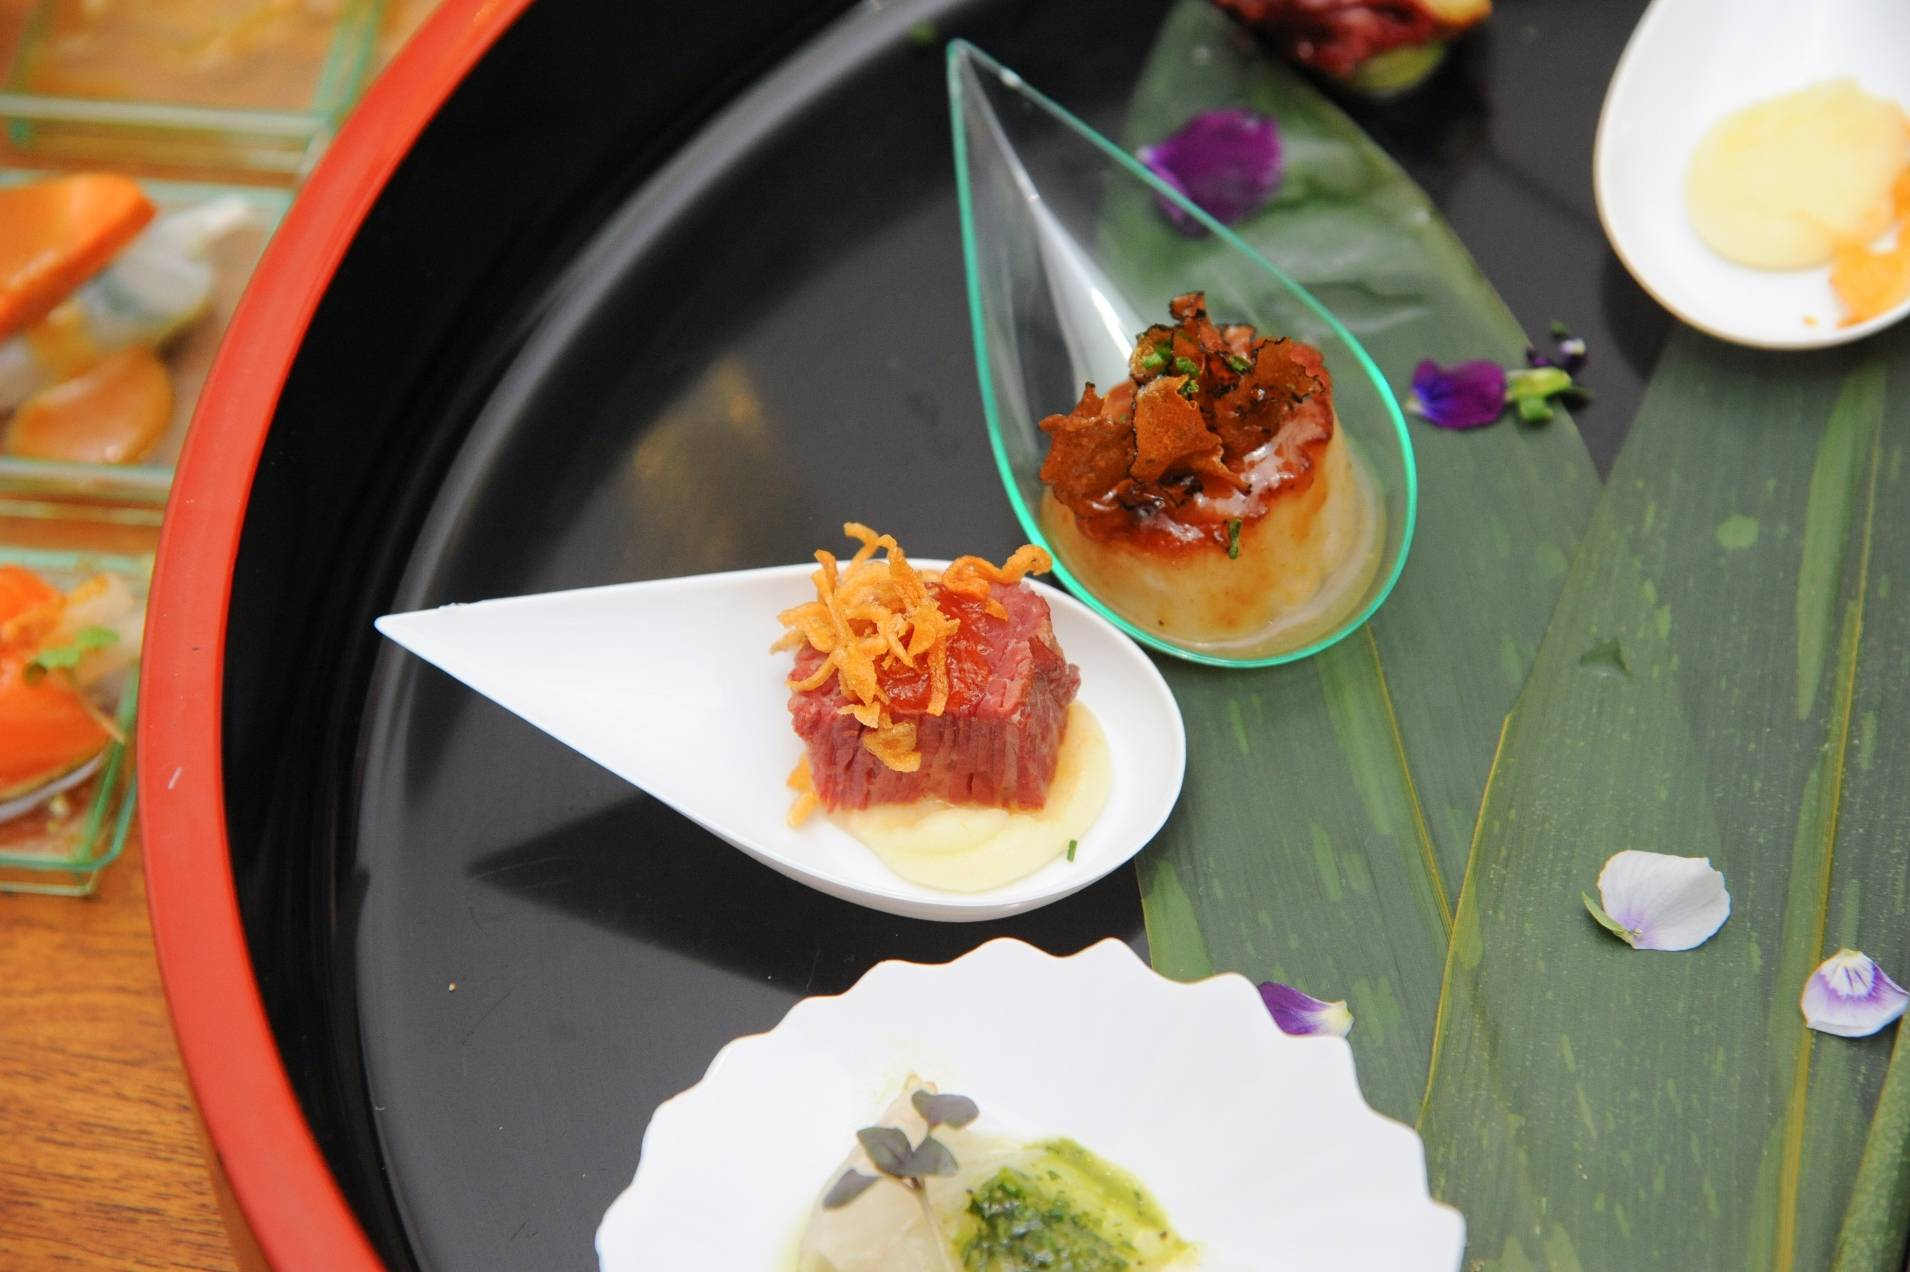 10_08_13_ Assortment of offerings at Canapés and Cocktails Photo Credit Patrick Gray